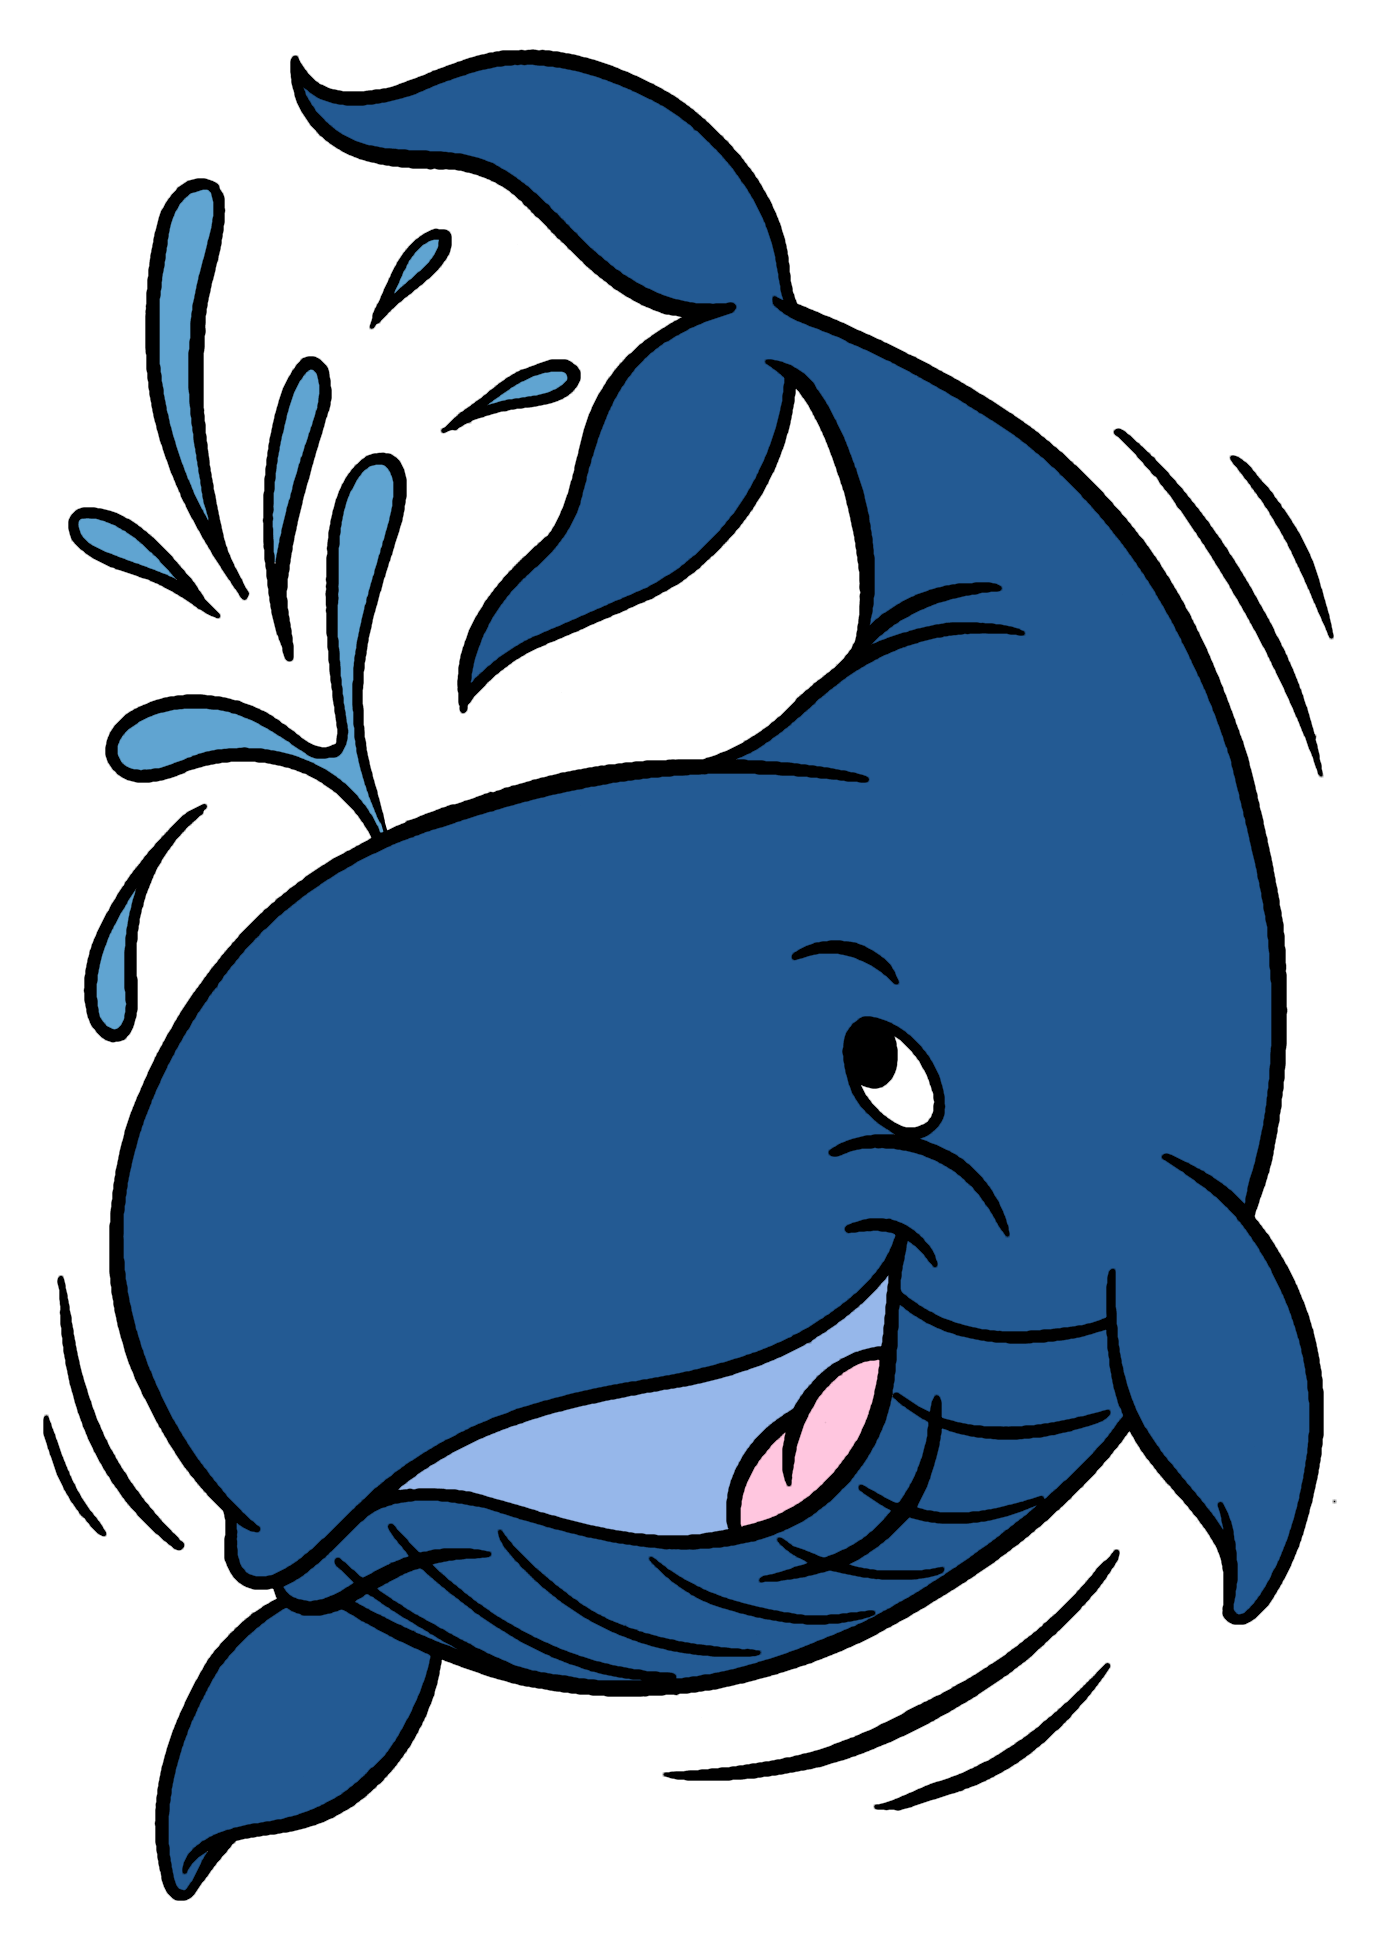 Clipart otter eating fish banner royalty free Whale clipart | Crafts | Pinterest | Vbs 2016, Clip art and Rock ... banner royalty free